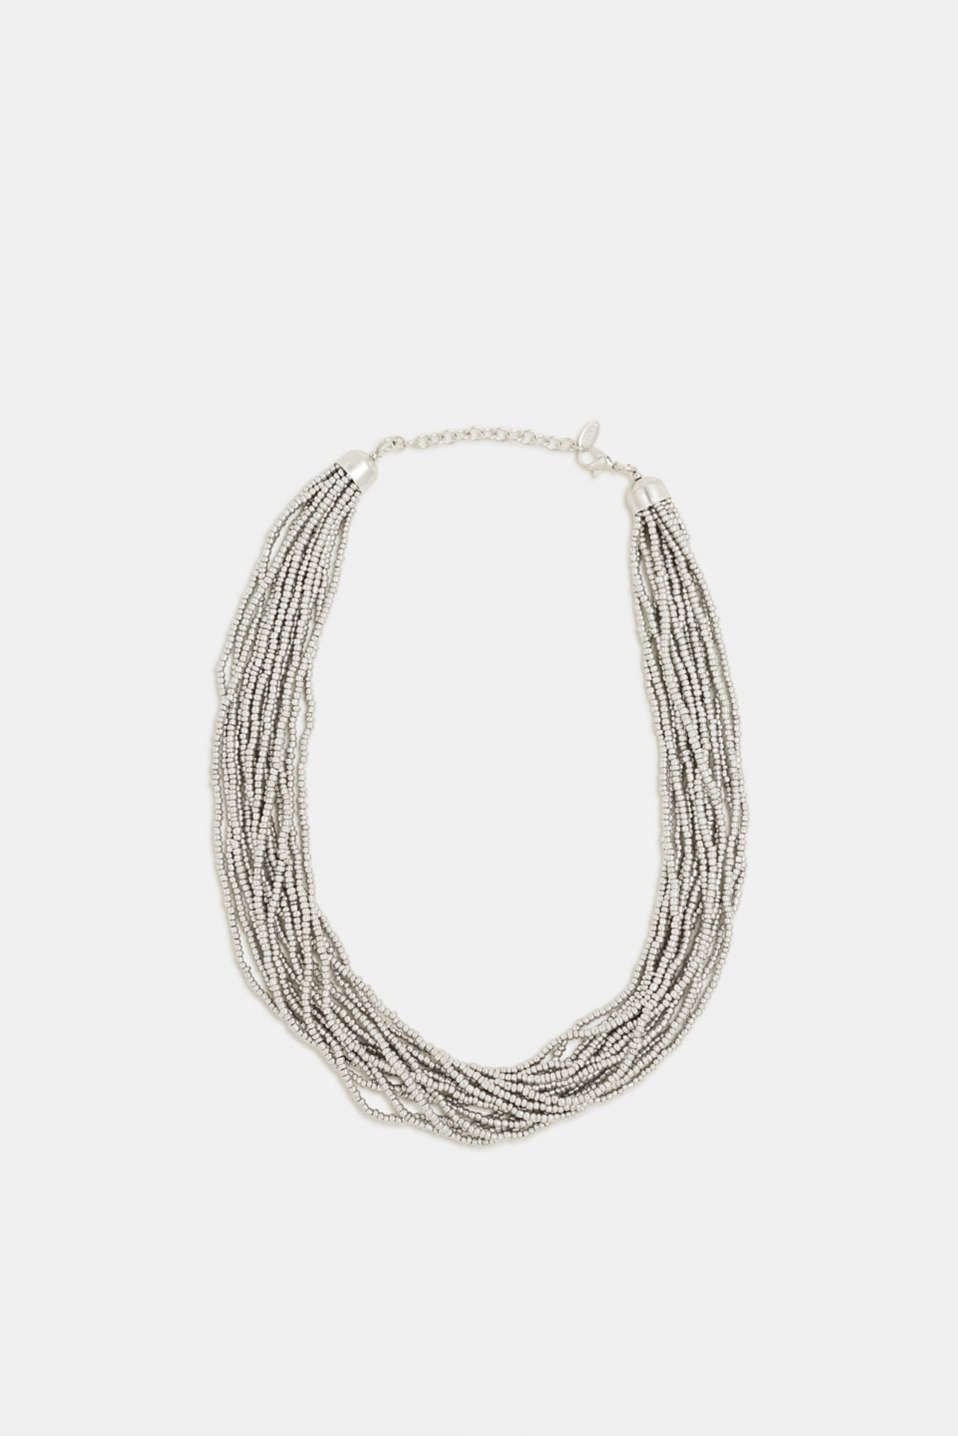 Esprit - Multi-strand choker with metal beads